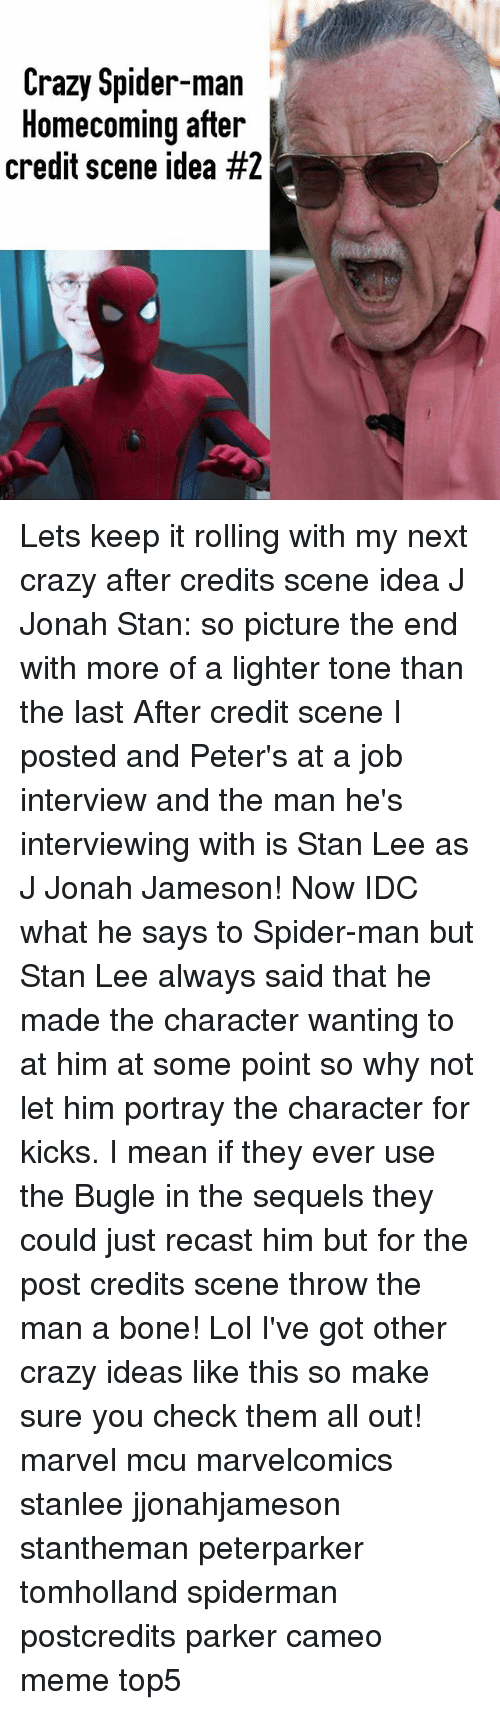 Crazy, J. Jonah Jameson, and Job Interview: Crazy Spider-man  Homecoming after  credit scene idea Lets keep it rolling with my next crazy after credits scene idea J Jonah Stan: so picture the end with more of a lighter tone than the last After credit scene I posted and Peter's at a job interview and the man he's interviewing with is Stan Lee as J Jonah Jameson! Now IDC what he says to Spider-man but Stan Lee always said that he made the character wanting to at him at some point so why not let him portray the character for kicks. I mean if they ever use the Bugle in the sequels they could just recast him but for the post credits scene throw the man a bone! Lol I've got other crazy ideas like this so make sure you check them all out! marvel mcu marvelcomics stanlee jjonahjameson stantheman peterparker tomholland spiderman postcredits parker cameo meme top5